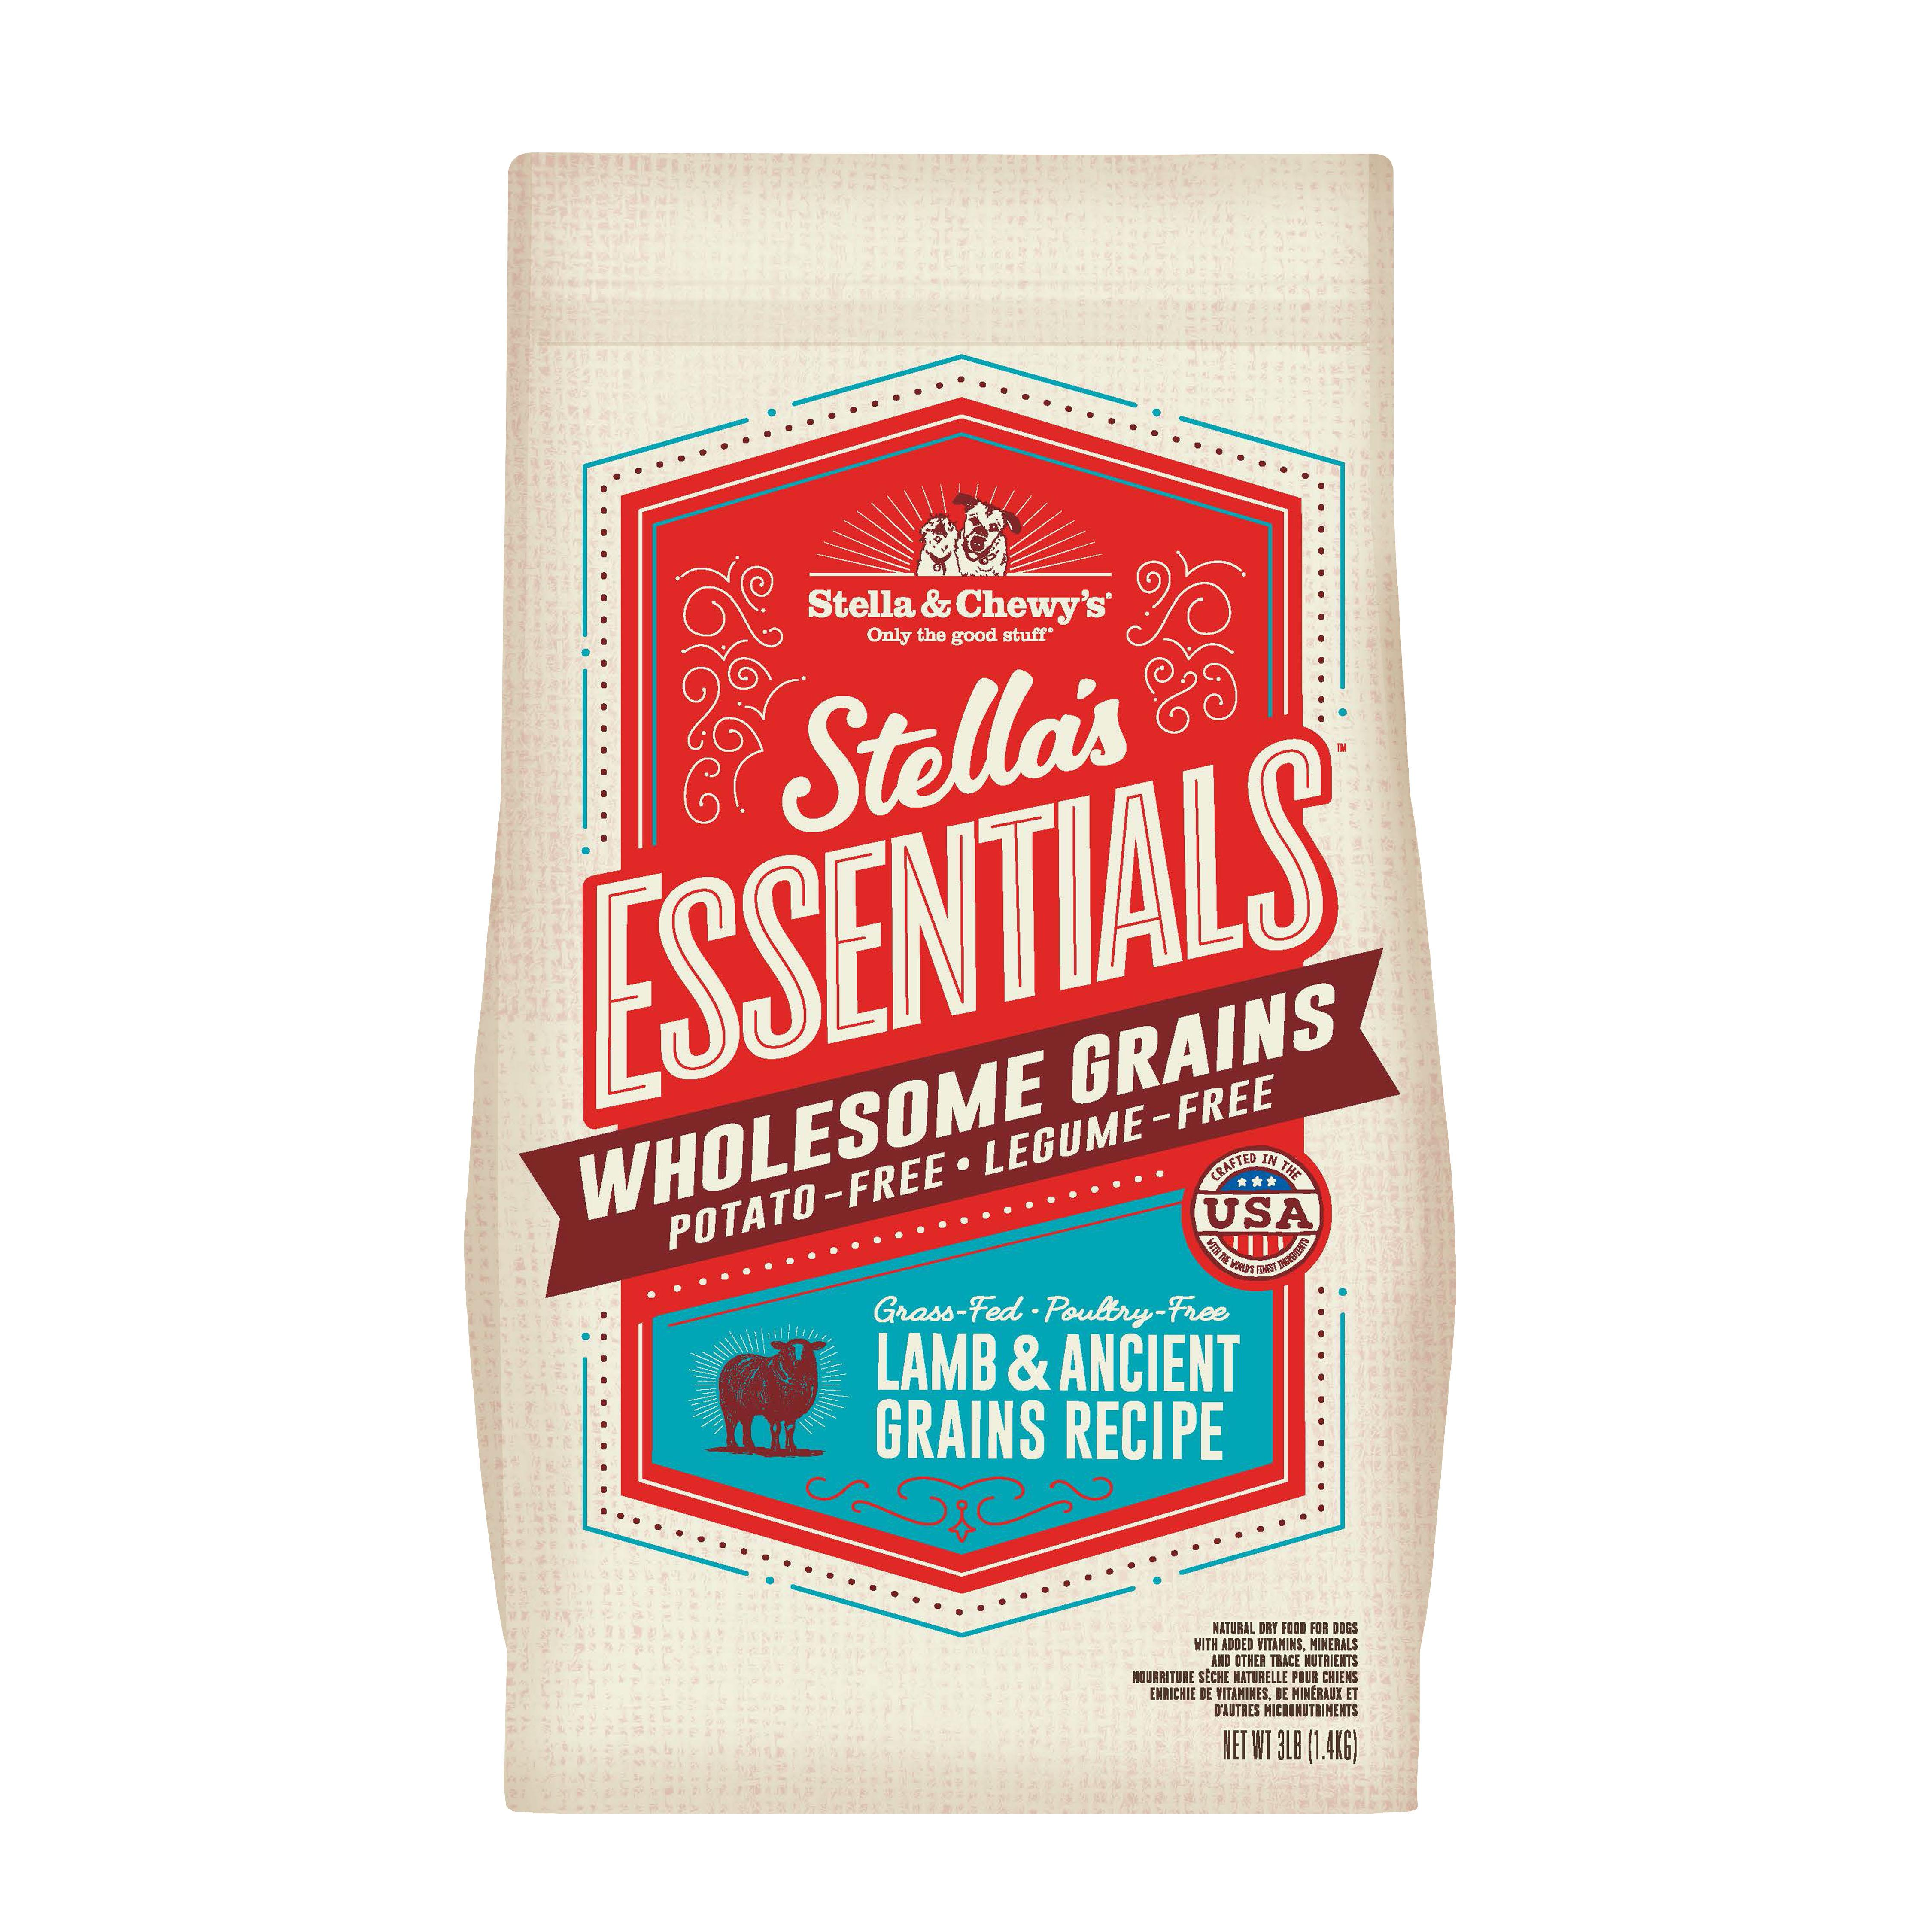 Stella & Chewy's Essentials Wholesome Grains Lamb & Ancient Grains Dry Dog Food, 3-lb